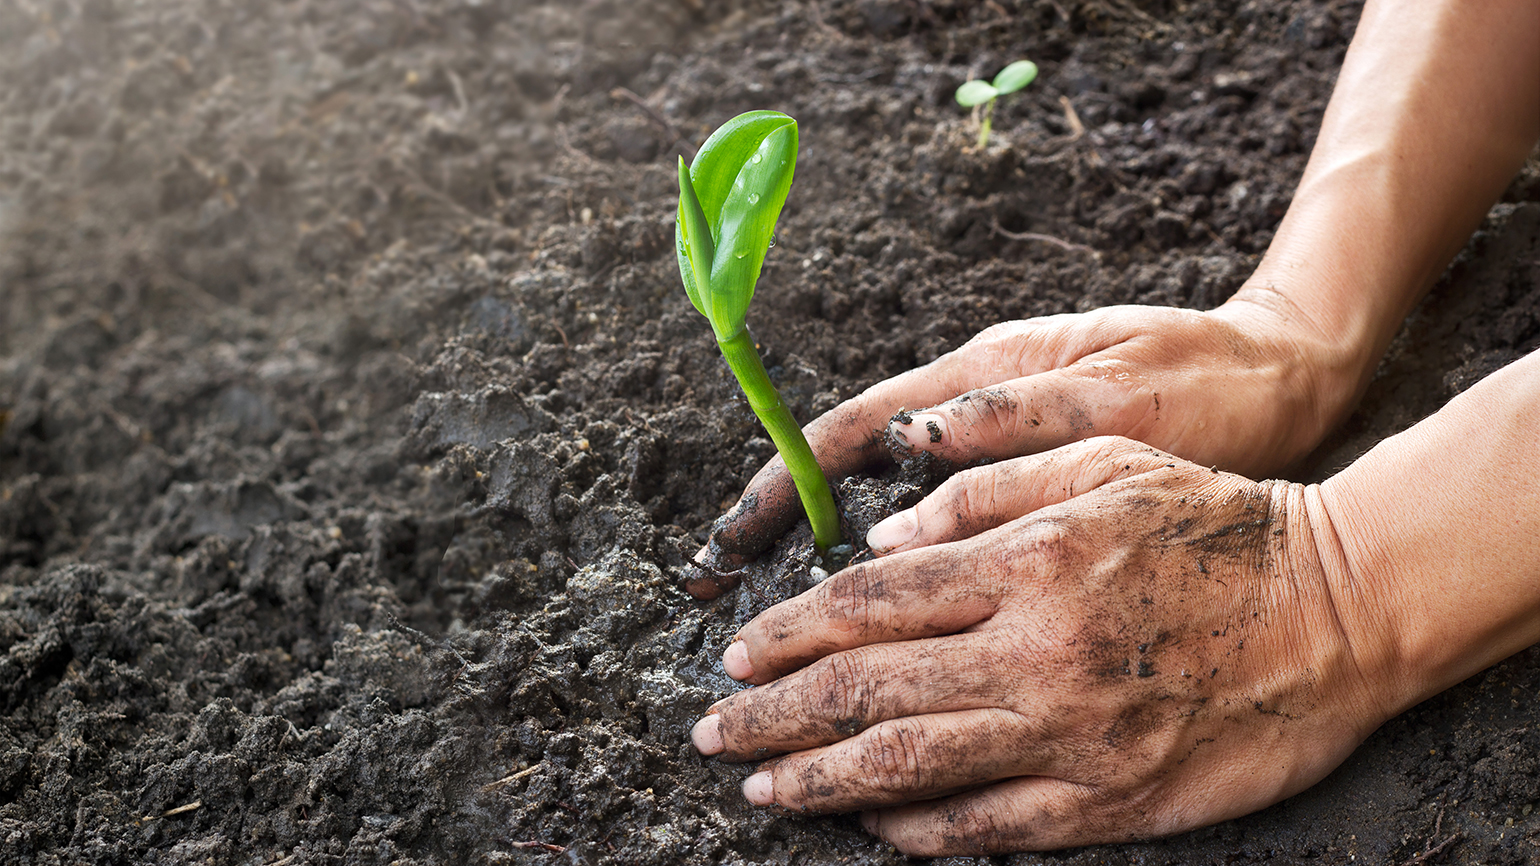 A gardener's hands form the soil around a seedling